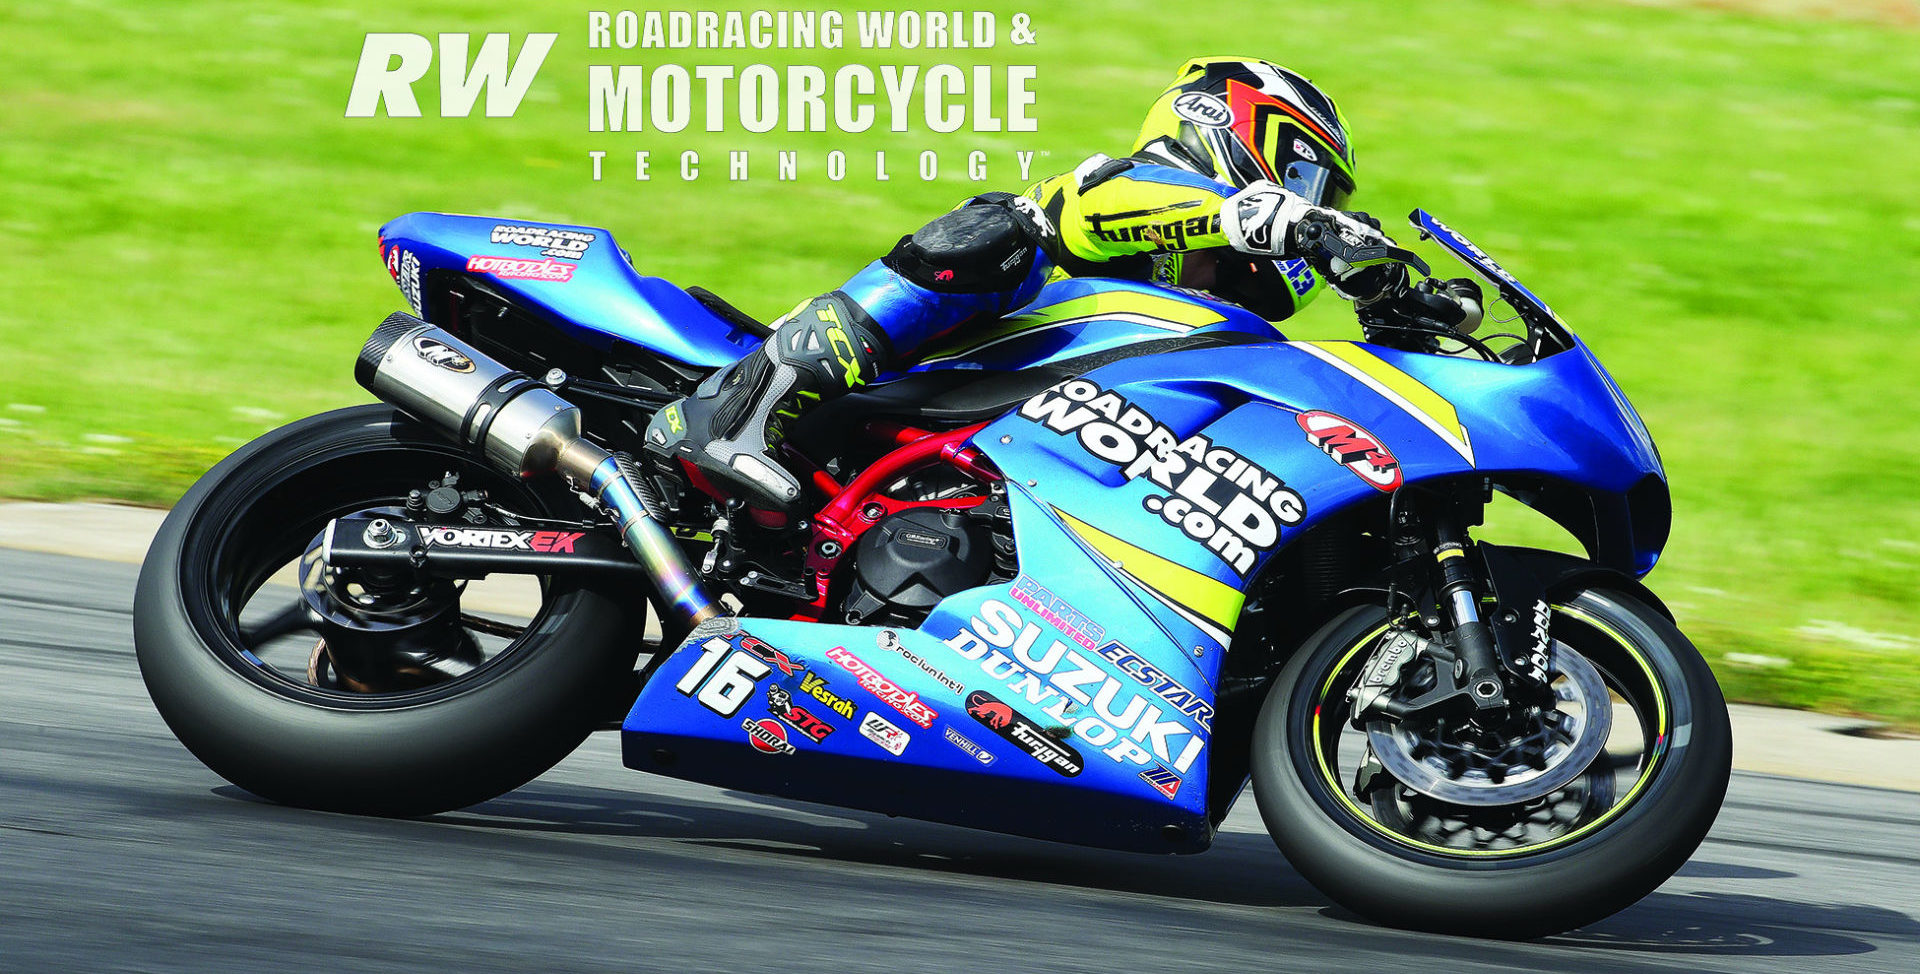 Suzuki Sv650 Project Bike Winning The Motoamerica Twins Cup Championship In The April Issue Roadracing World Magazine Motorcycle Riding Racing Tech News